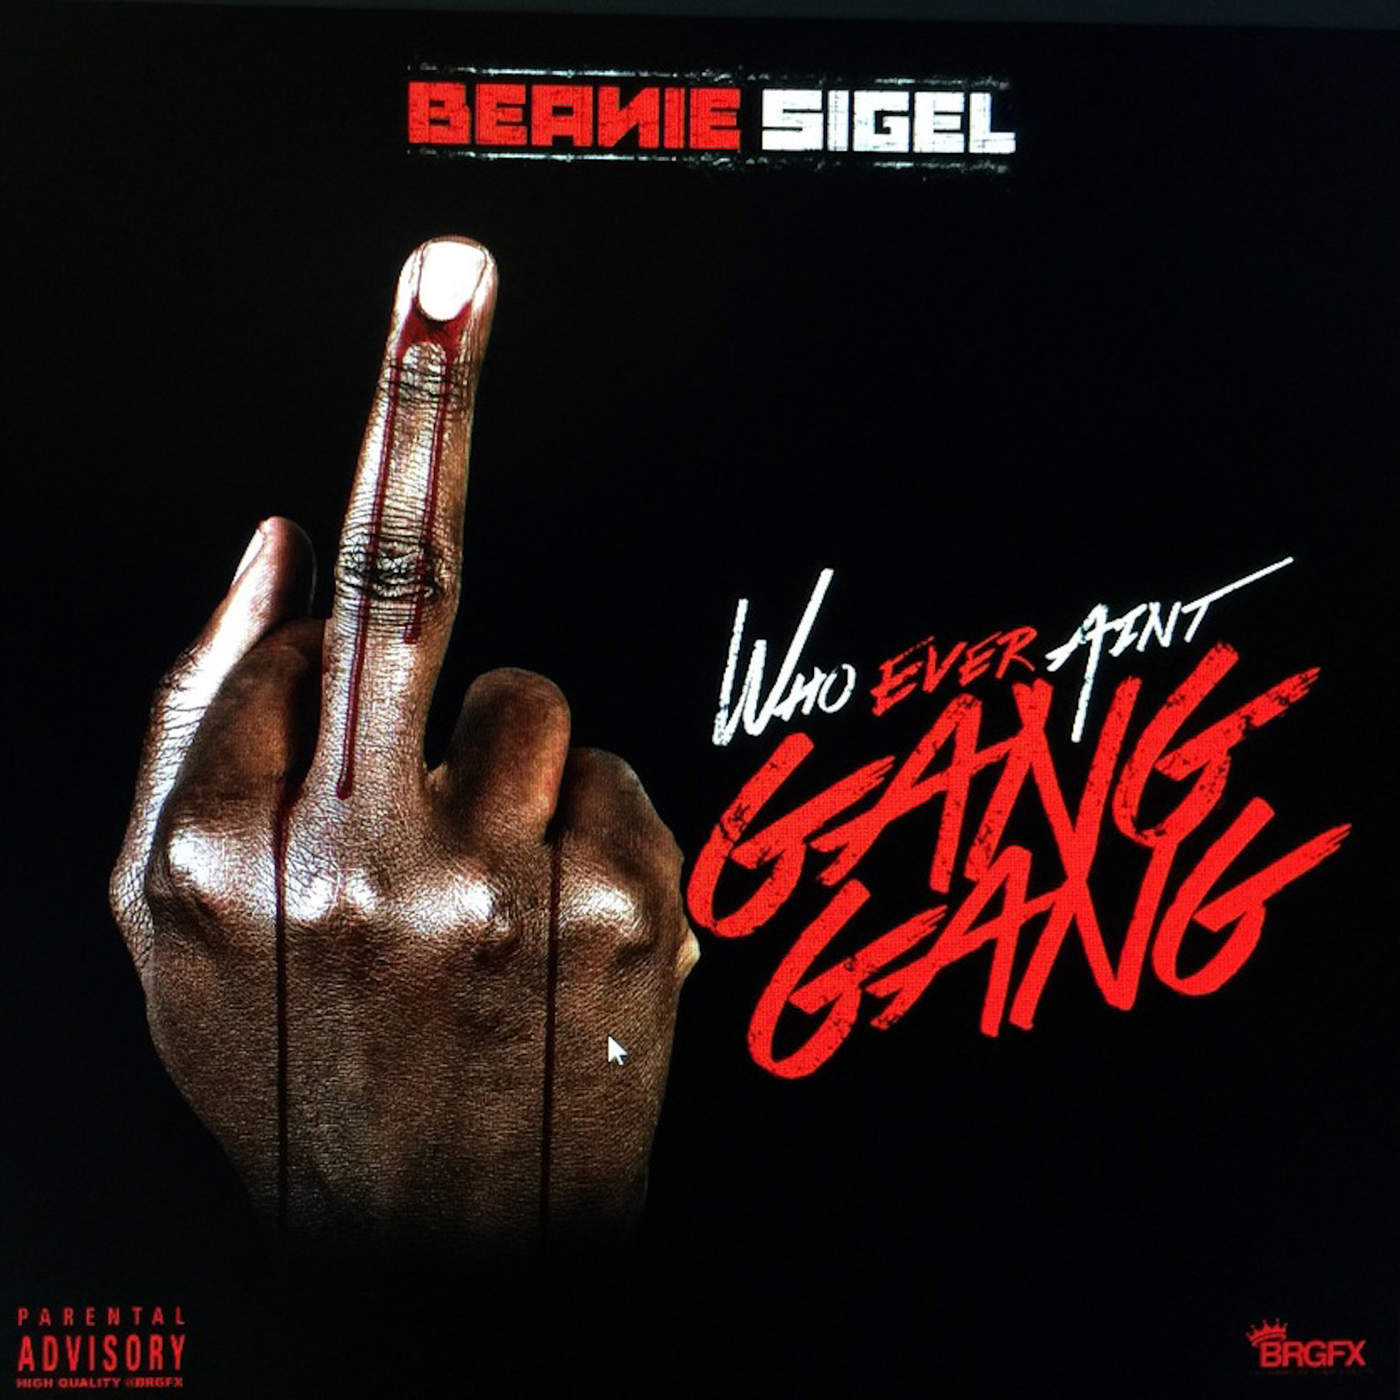 Beanie Sigel - Gang Gang - Single Cover